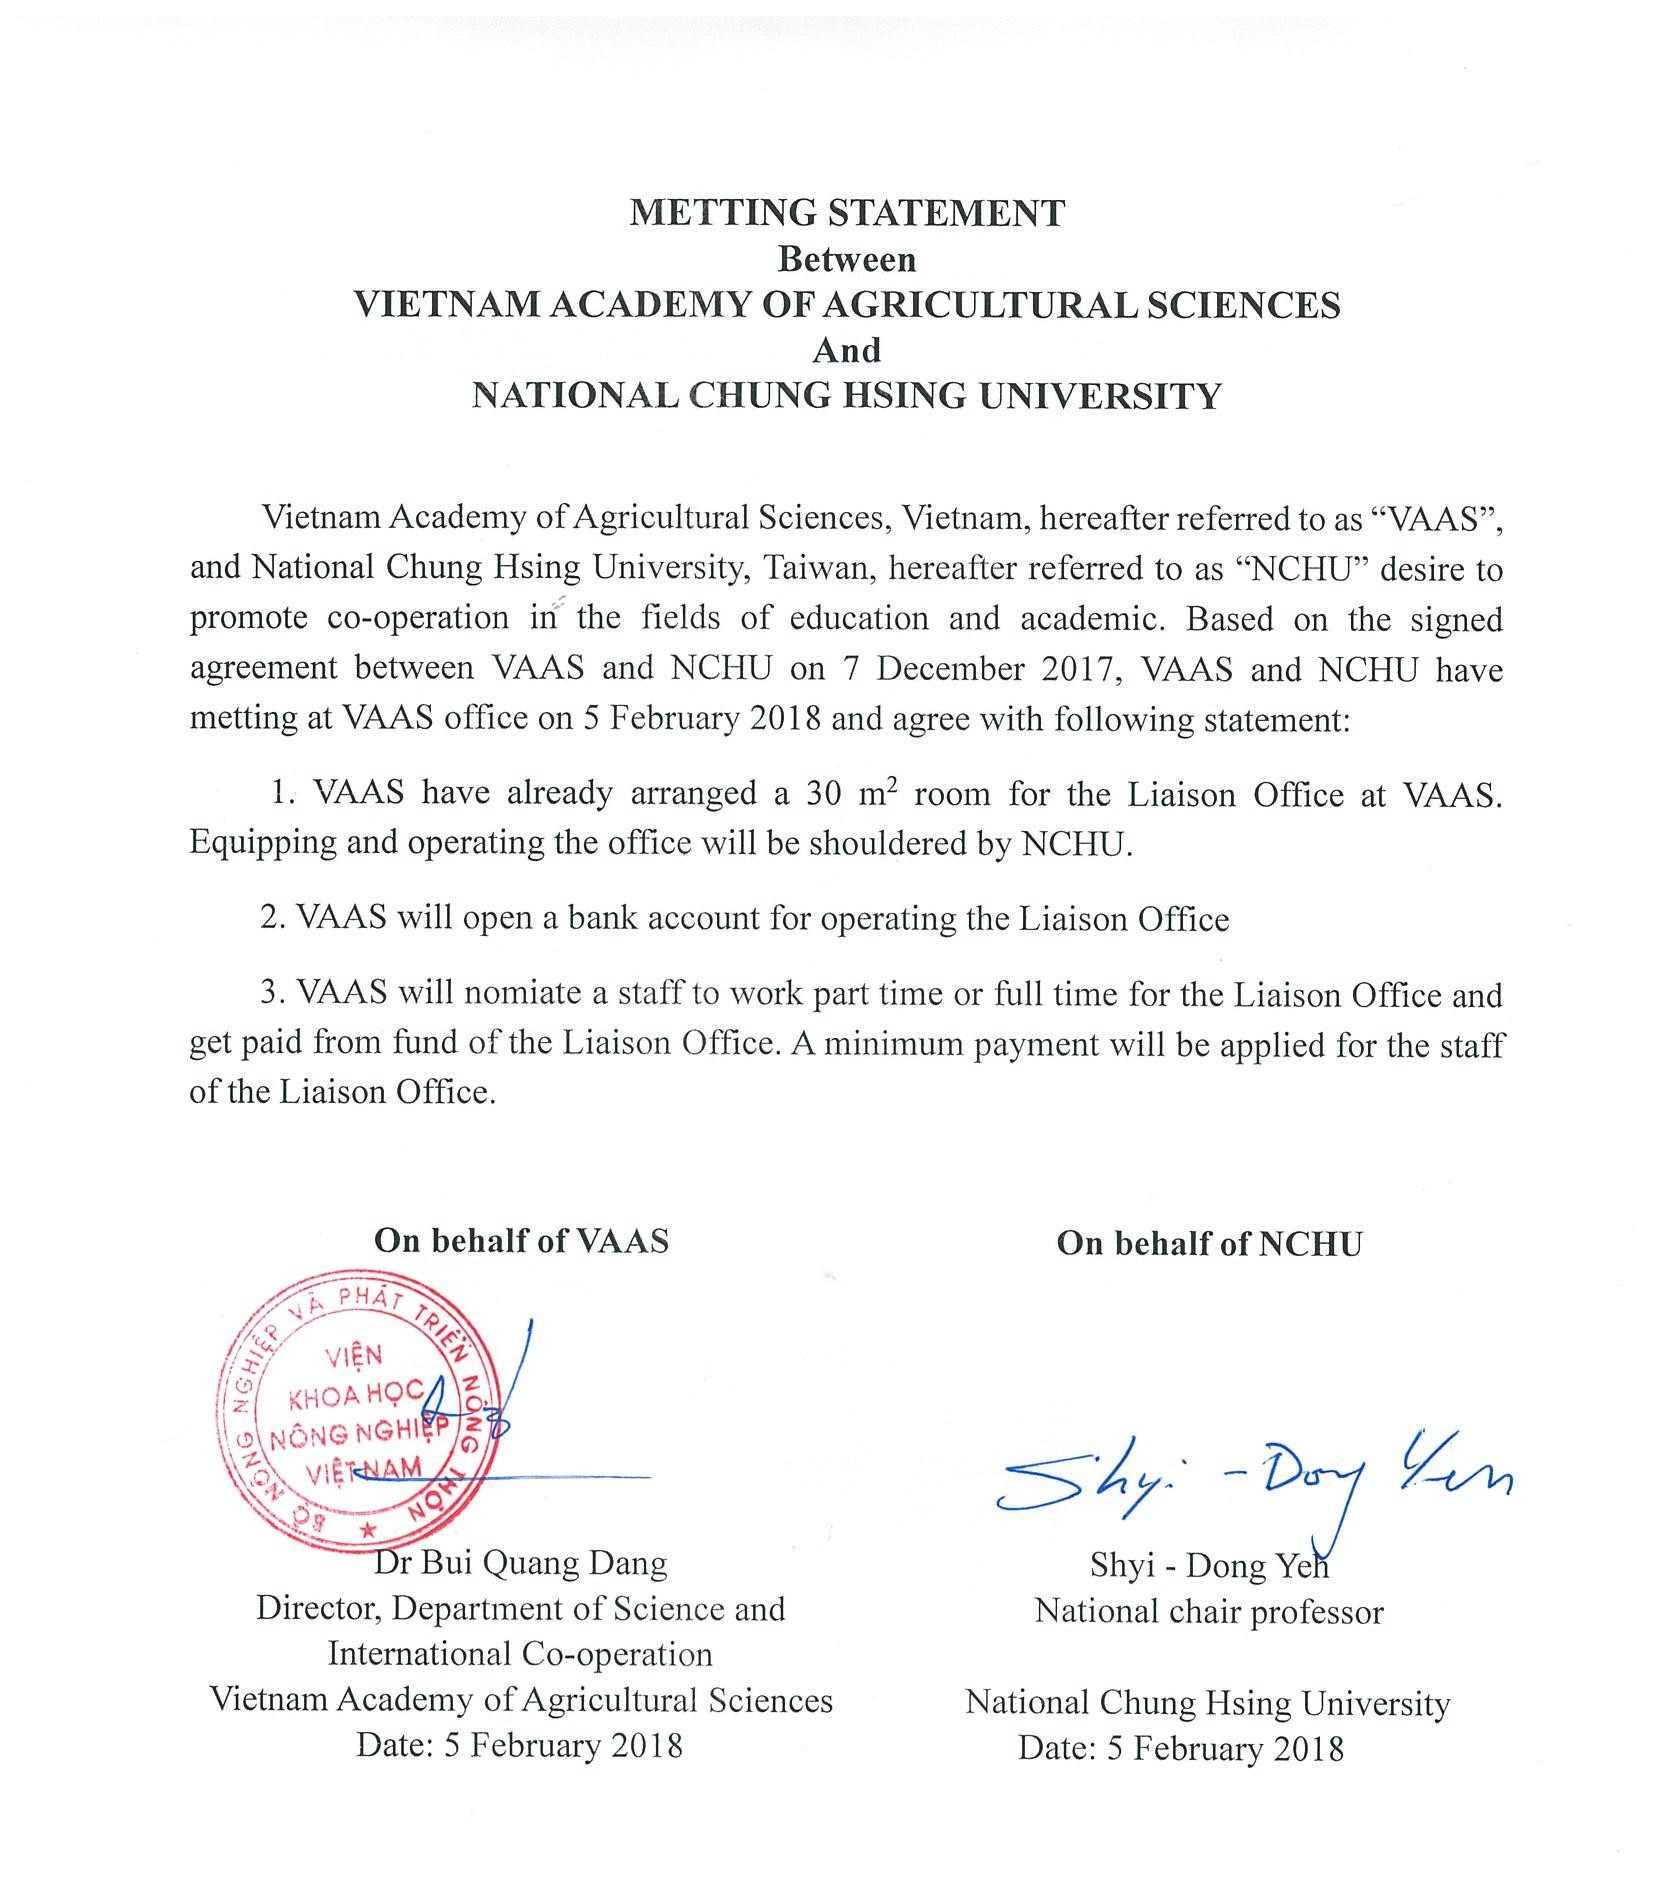 Consent letter signed for VAAS-NCHU ASTIC.